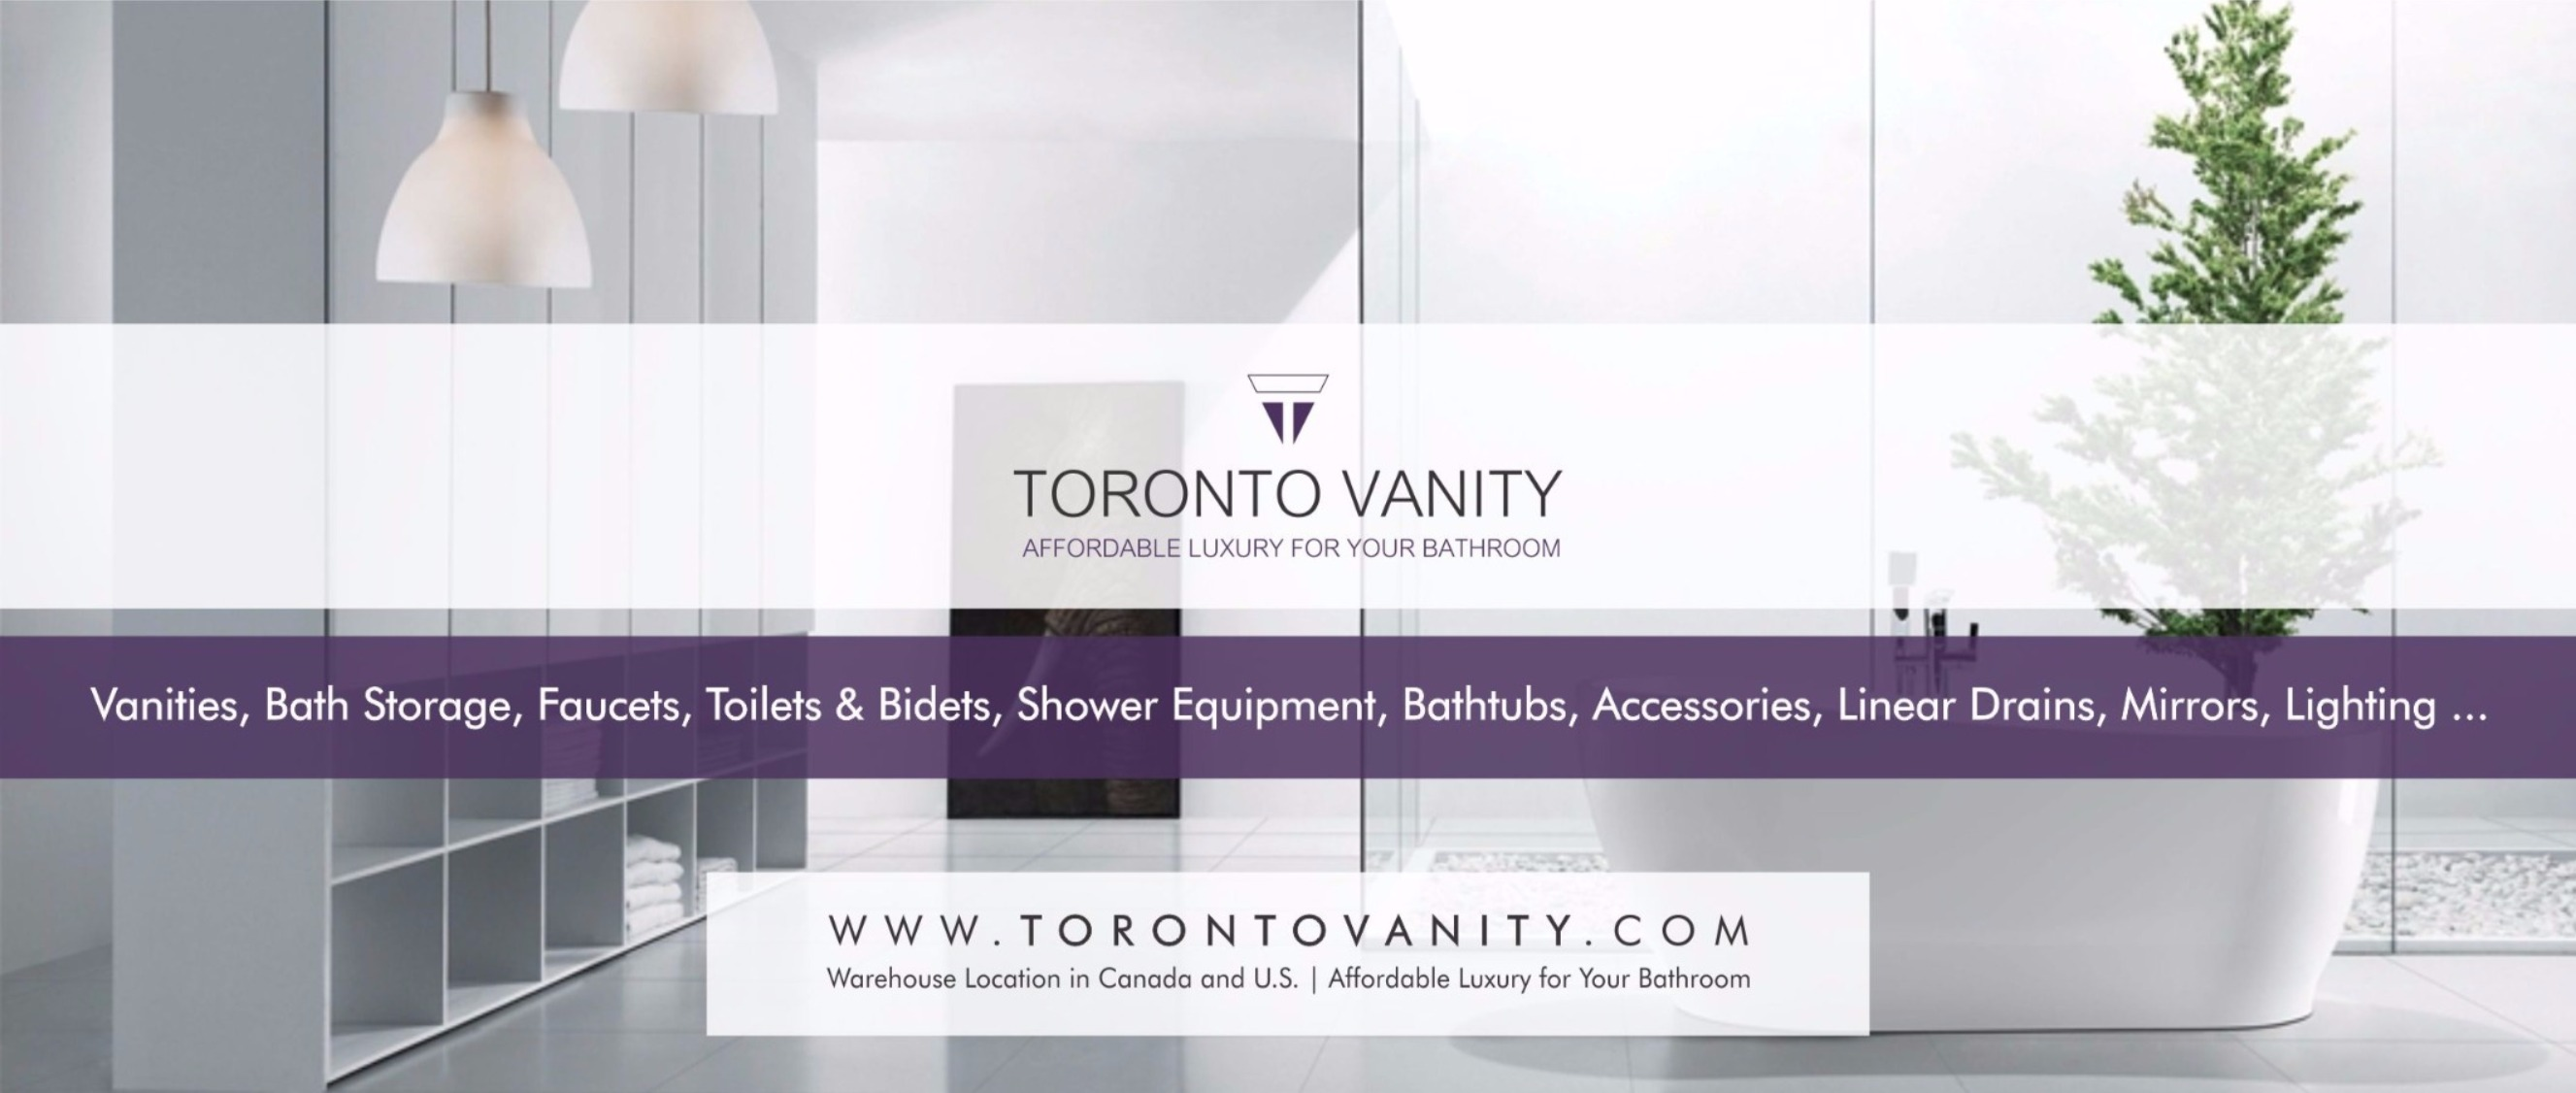 Contemporary Bathroom Vanities Toronto toronto vanity - your best source for modern bathroom vanities in